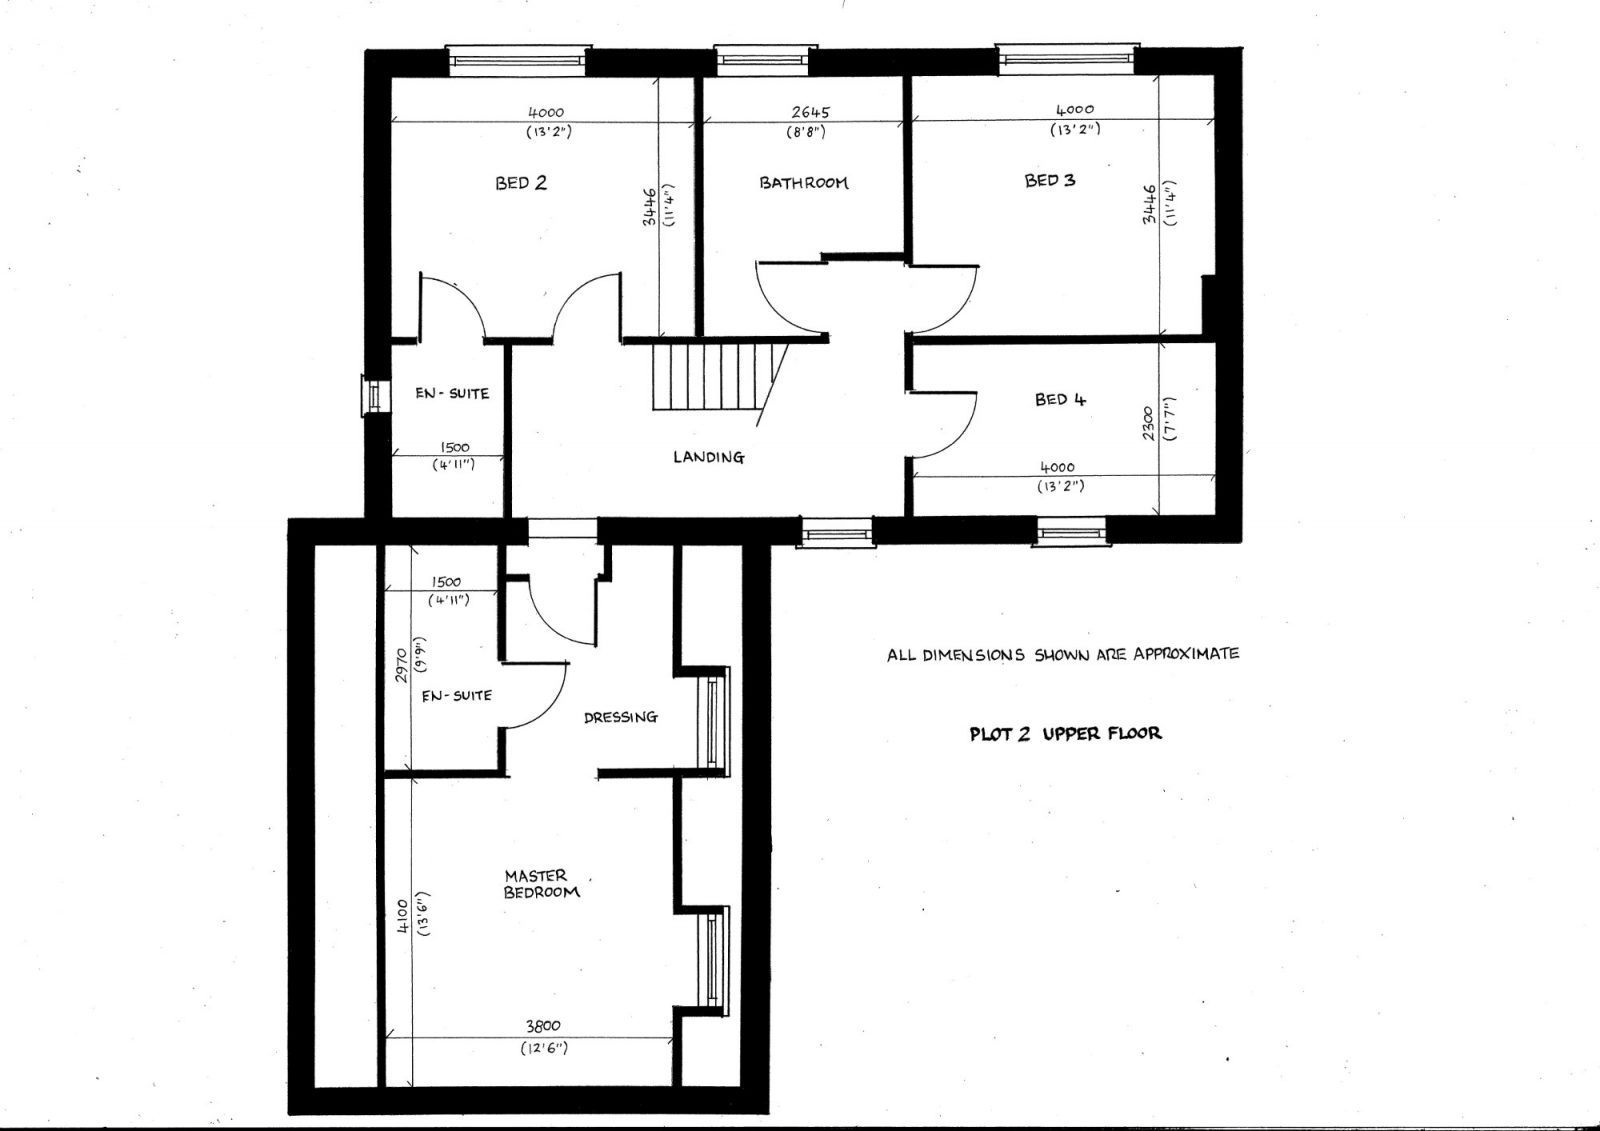 plot-2-upper-floor-plan-reduced